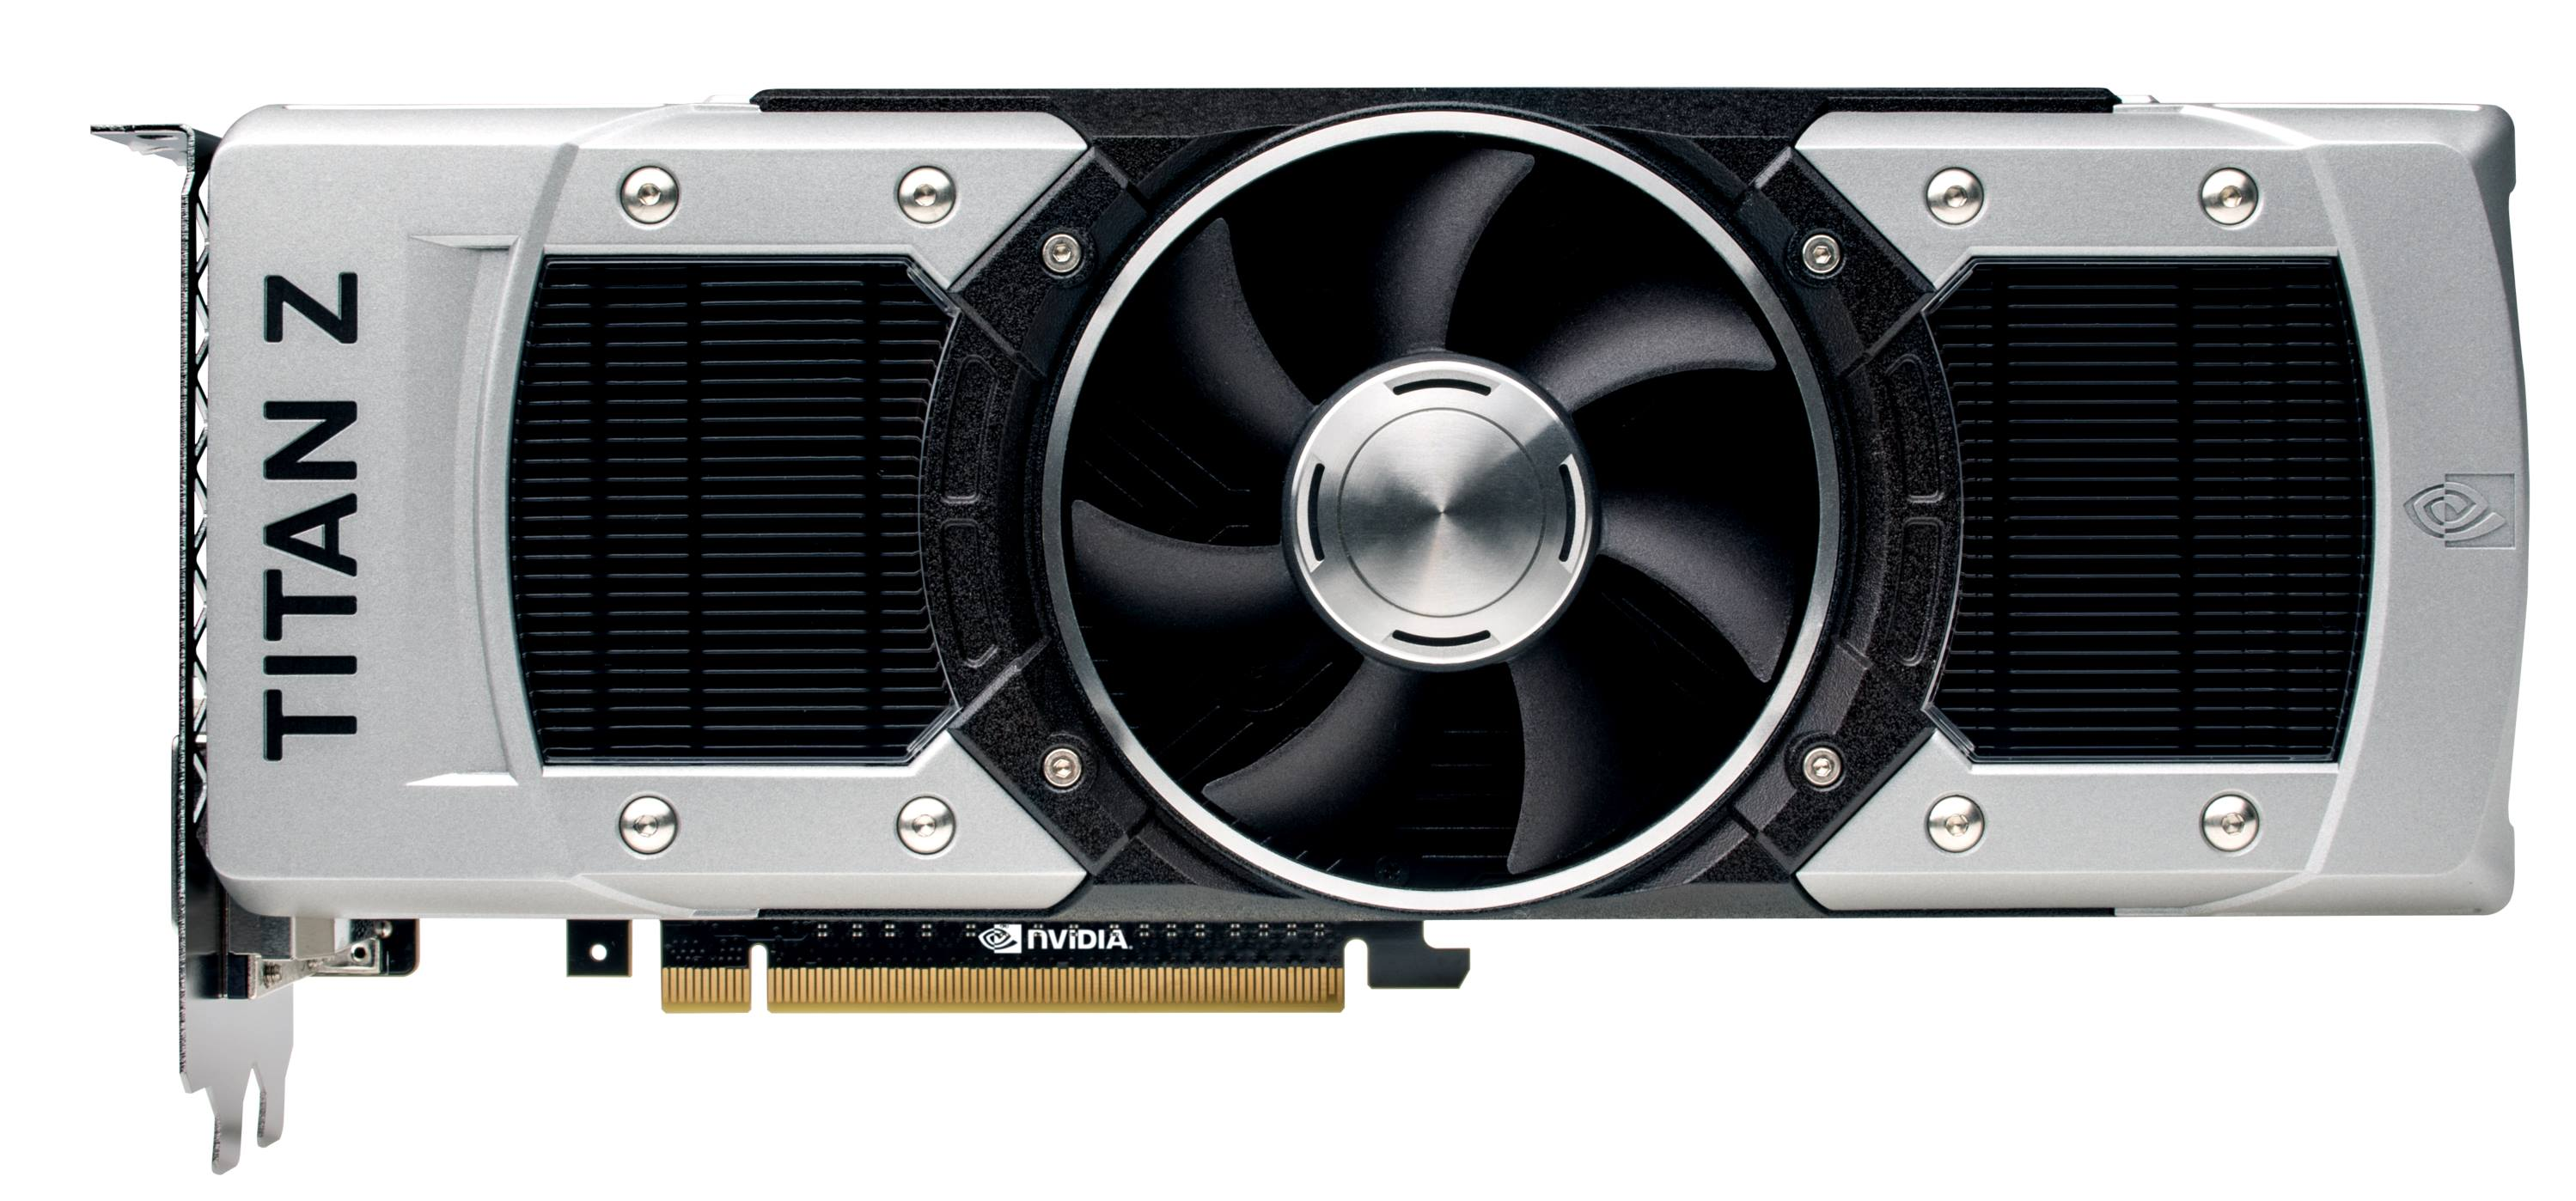 NVIDIA GeForce GTX Titan Z Official Specifications and Performance Unveiled - 375W TDP and GK110 ...